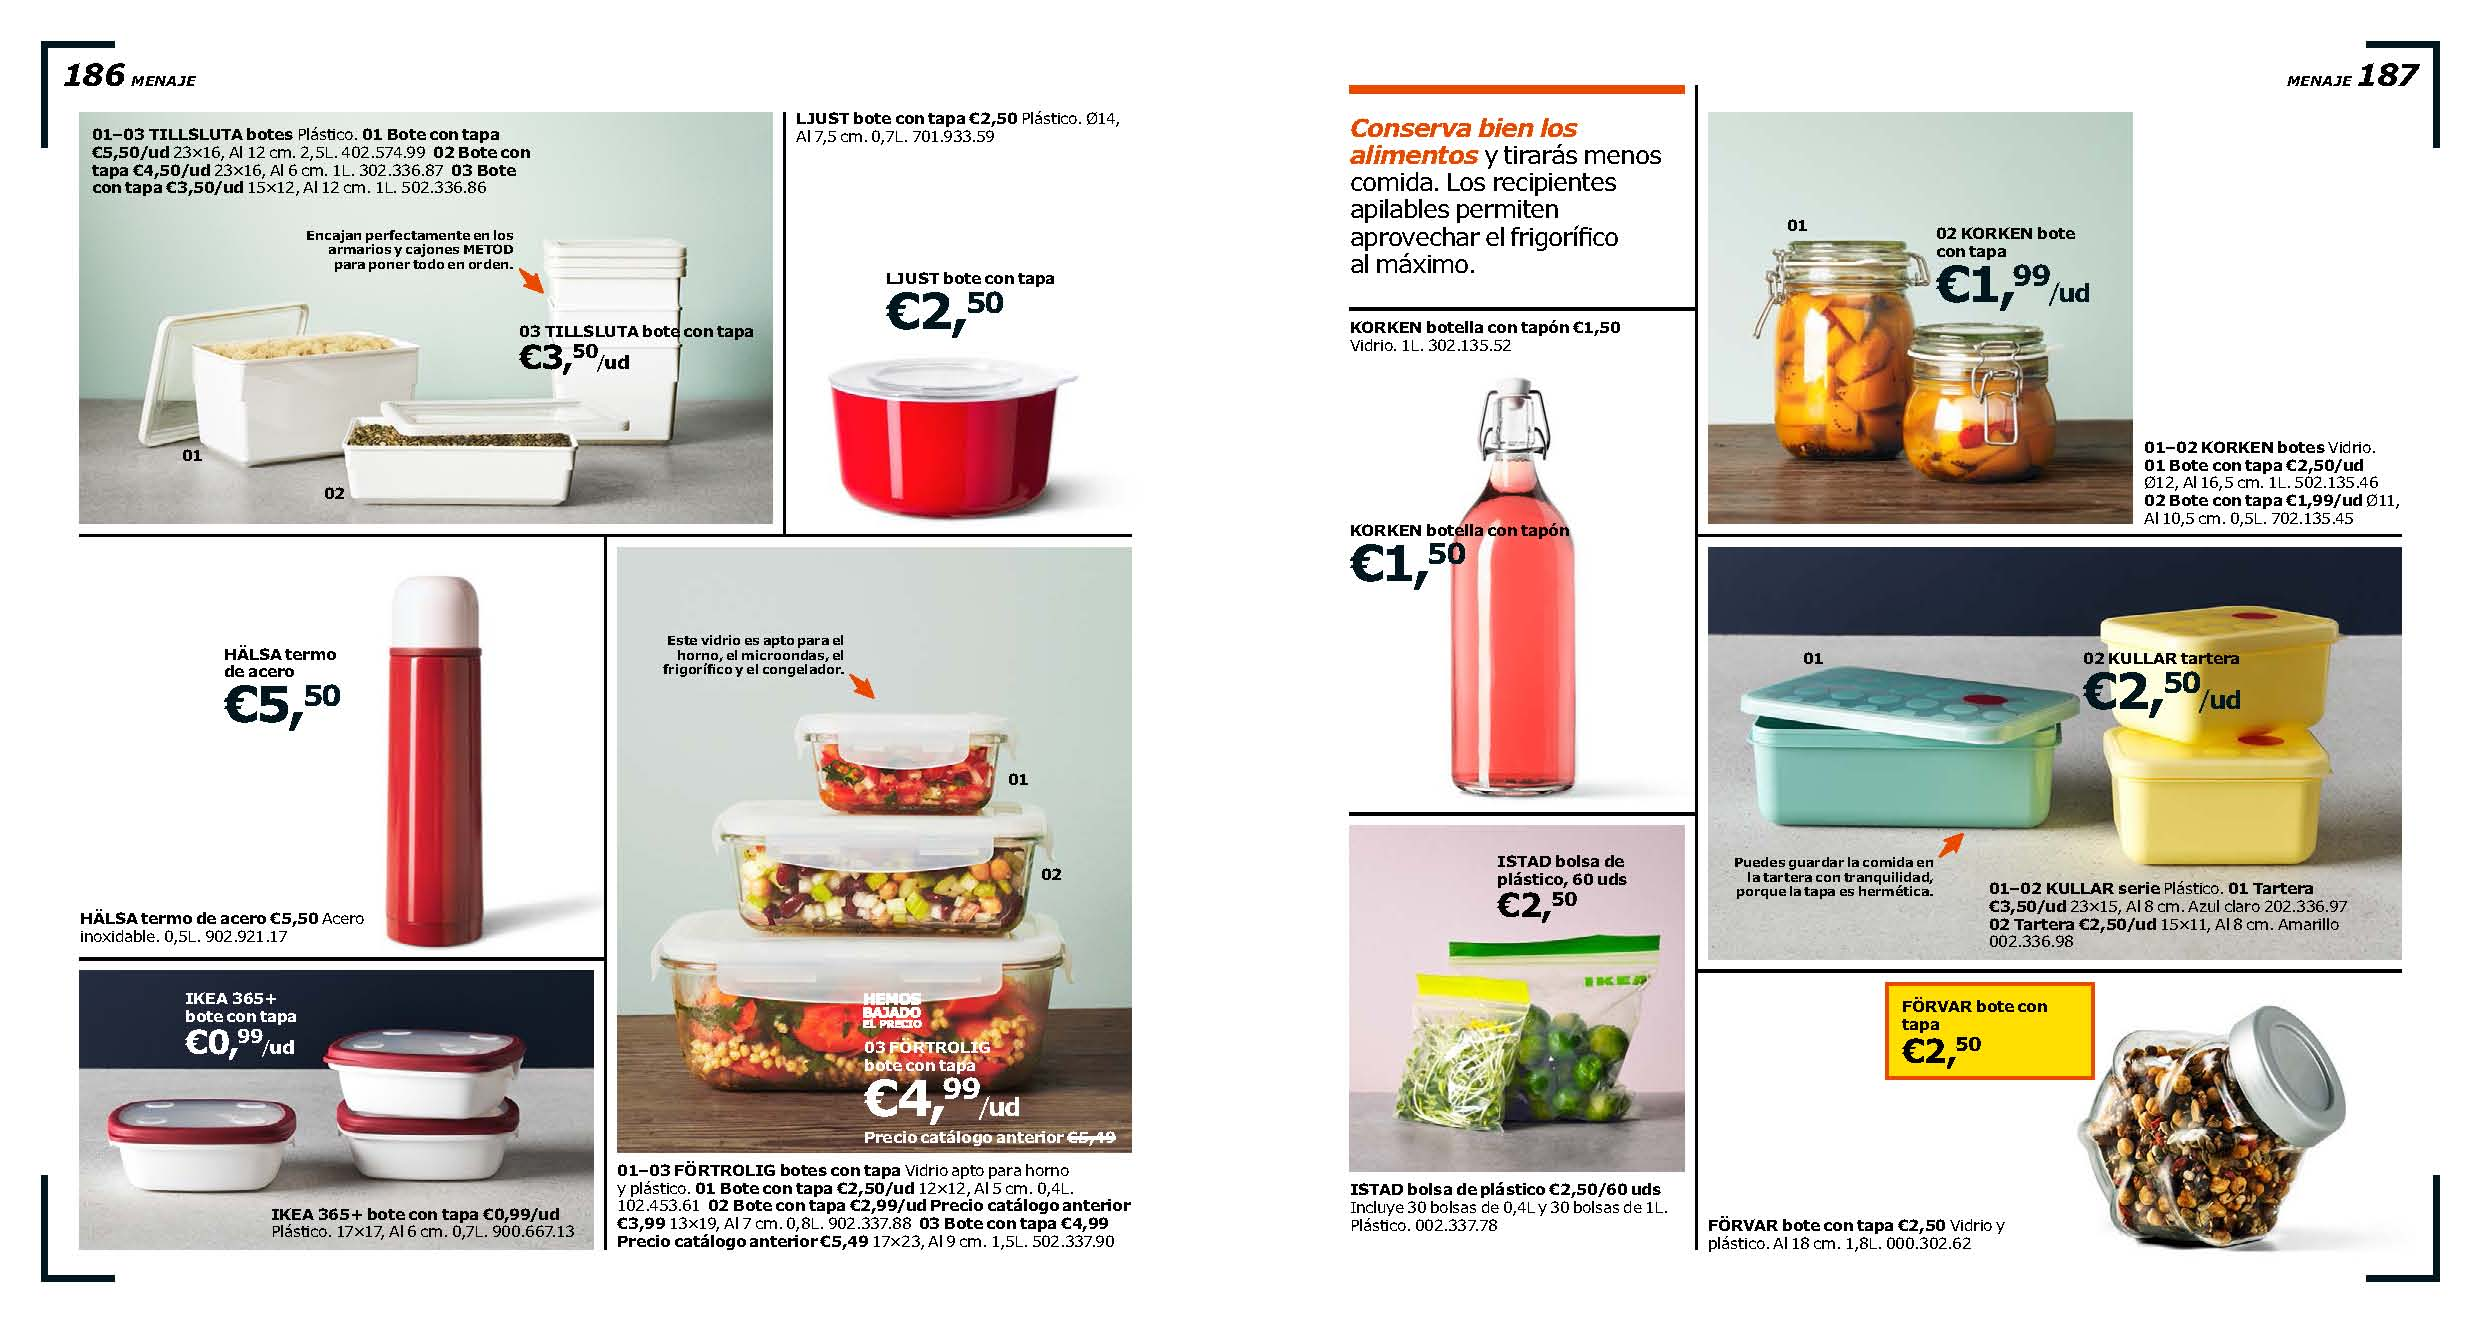 catalogo decorar con ikea 2016 es_Page_094